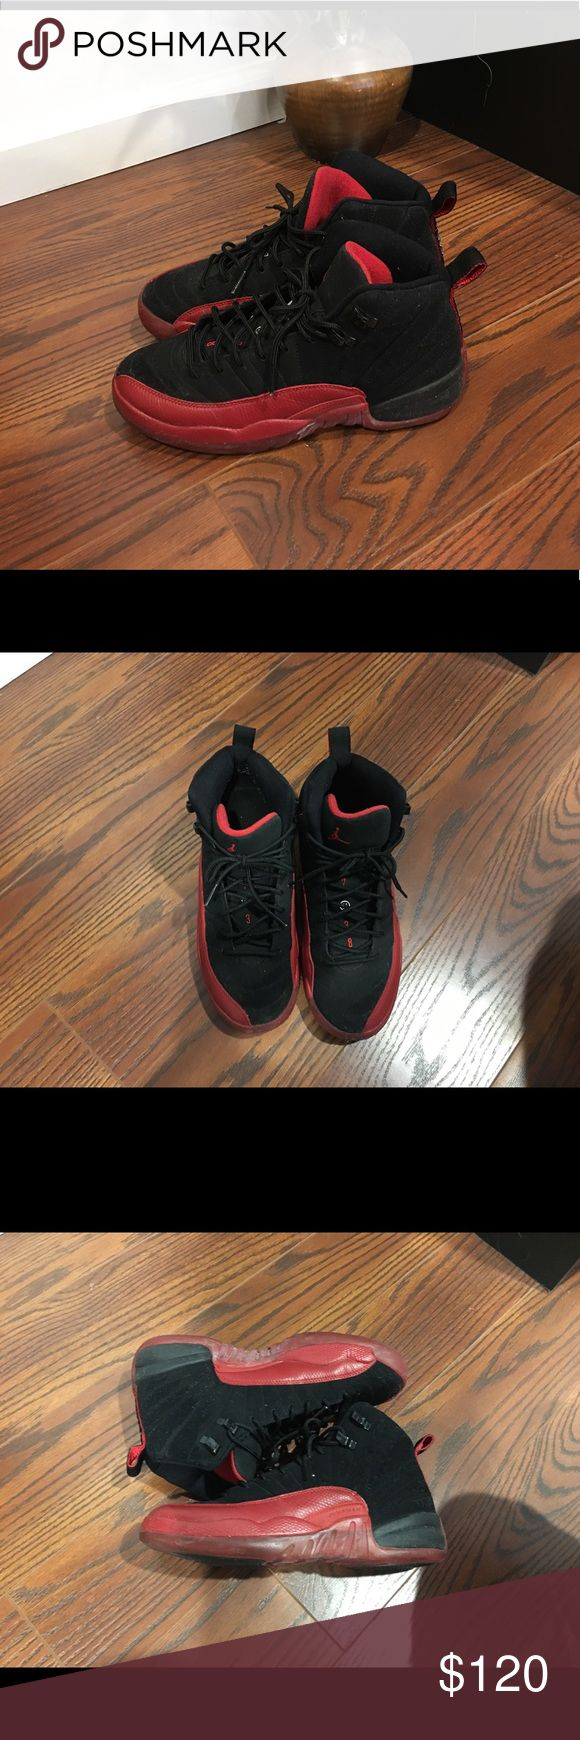 Michael Jordan kids size 6.5 red and black 12's Michael Jordan kids size 6.5 red and black 12's vintage style in really good condition!!' Jordan Shoes Sneakers